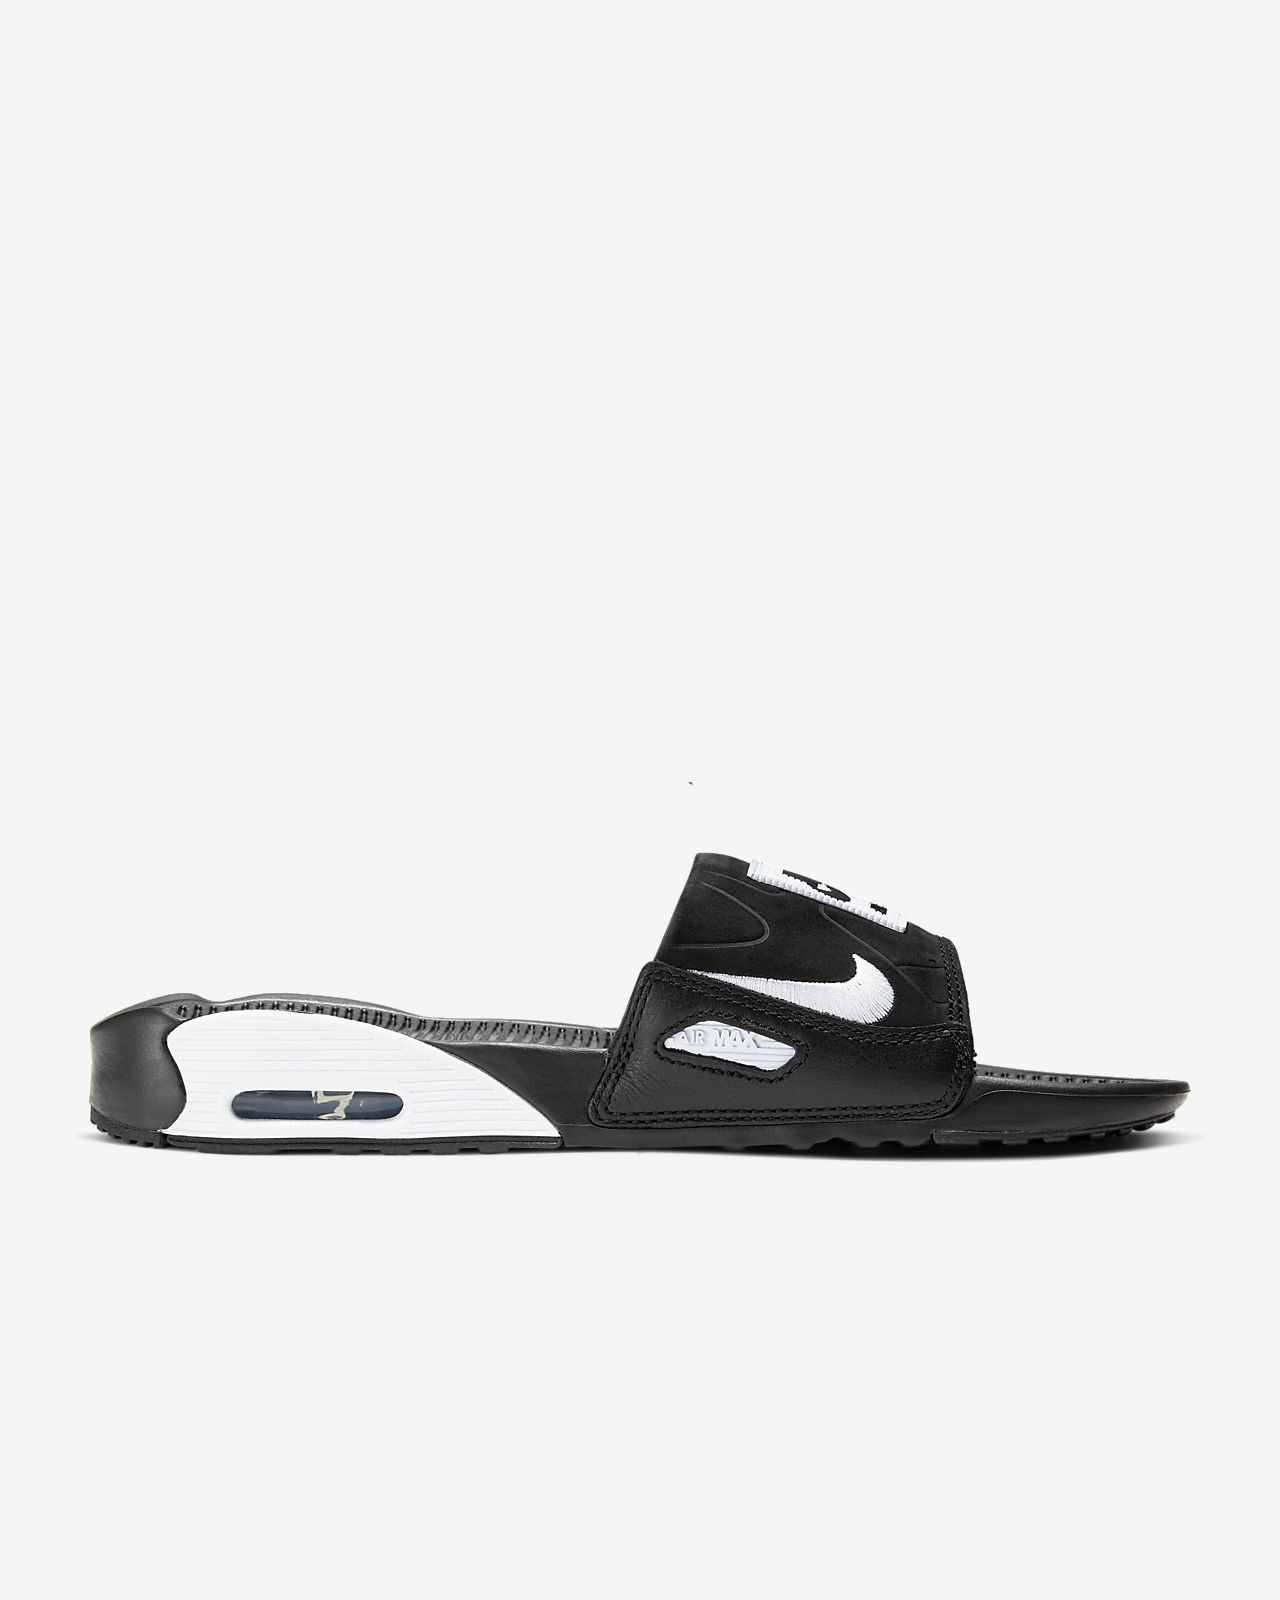 Nike Air Max 90 Damen Slides